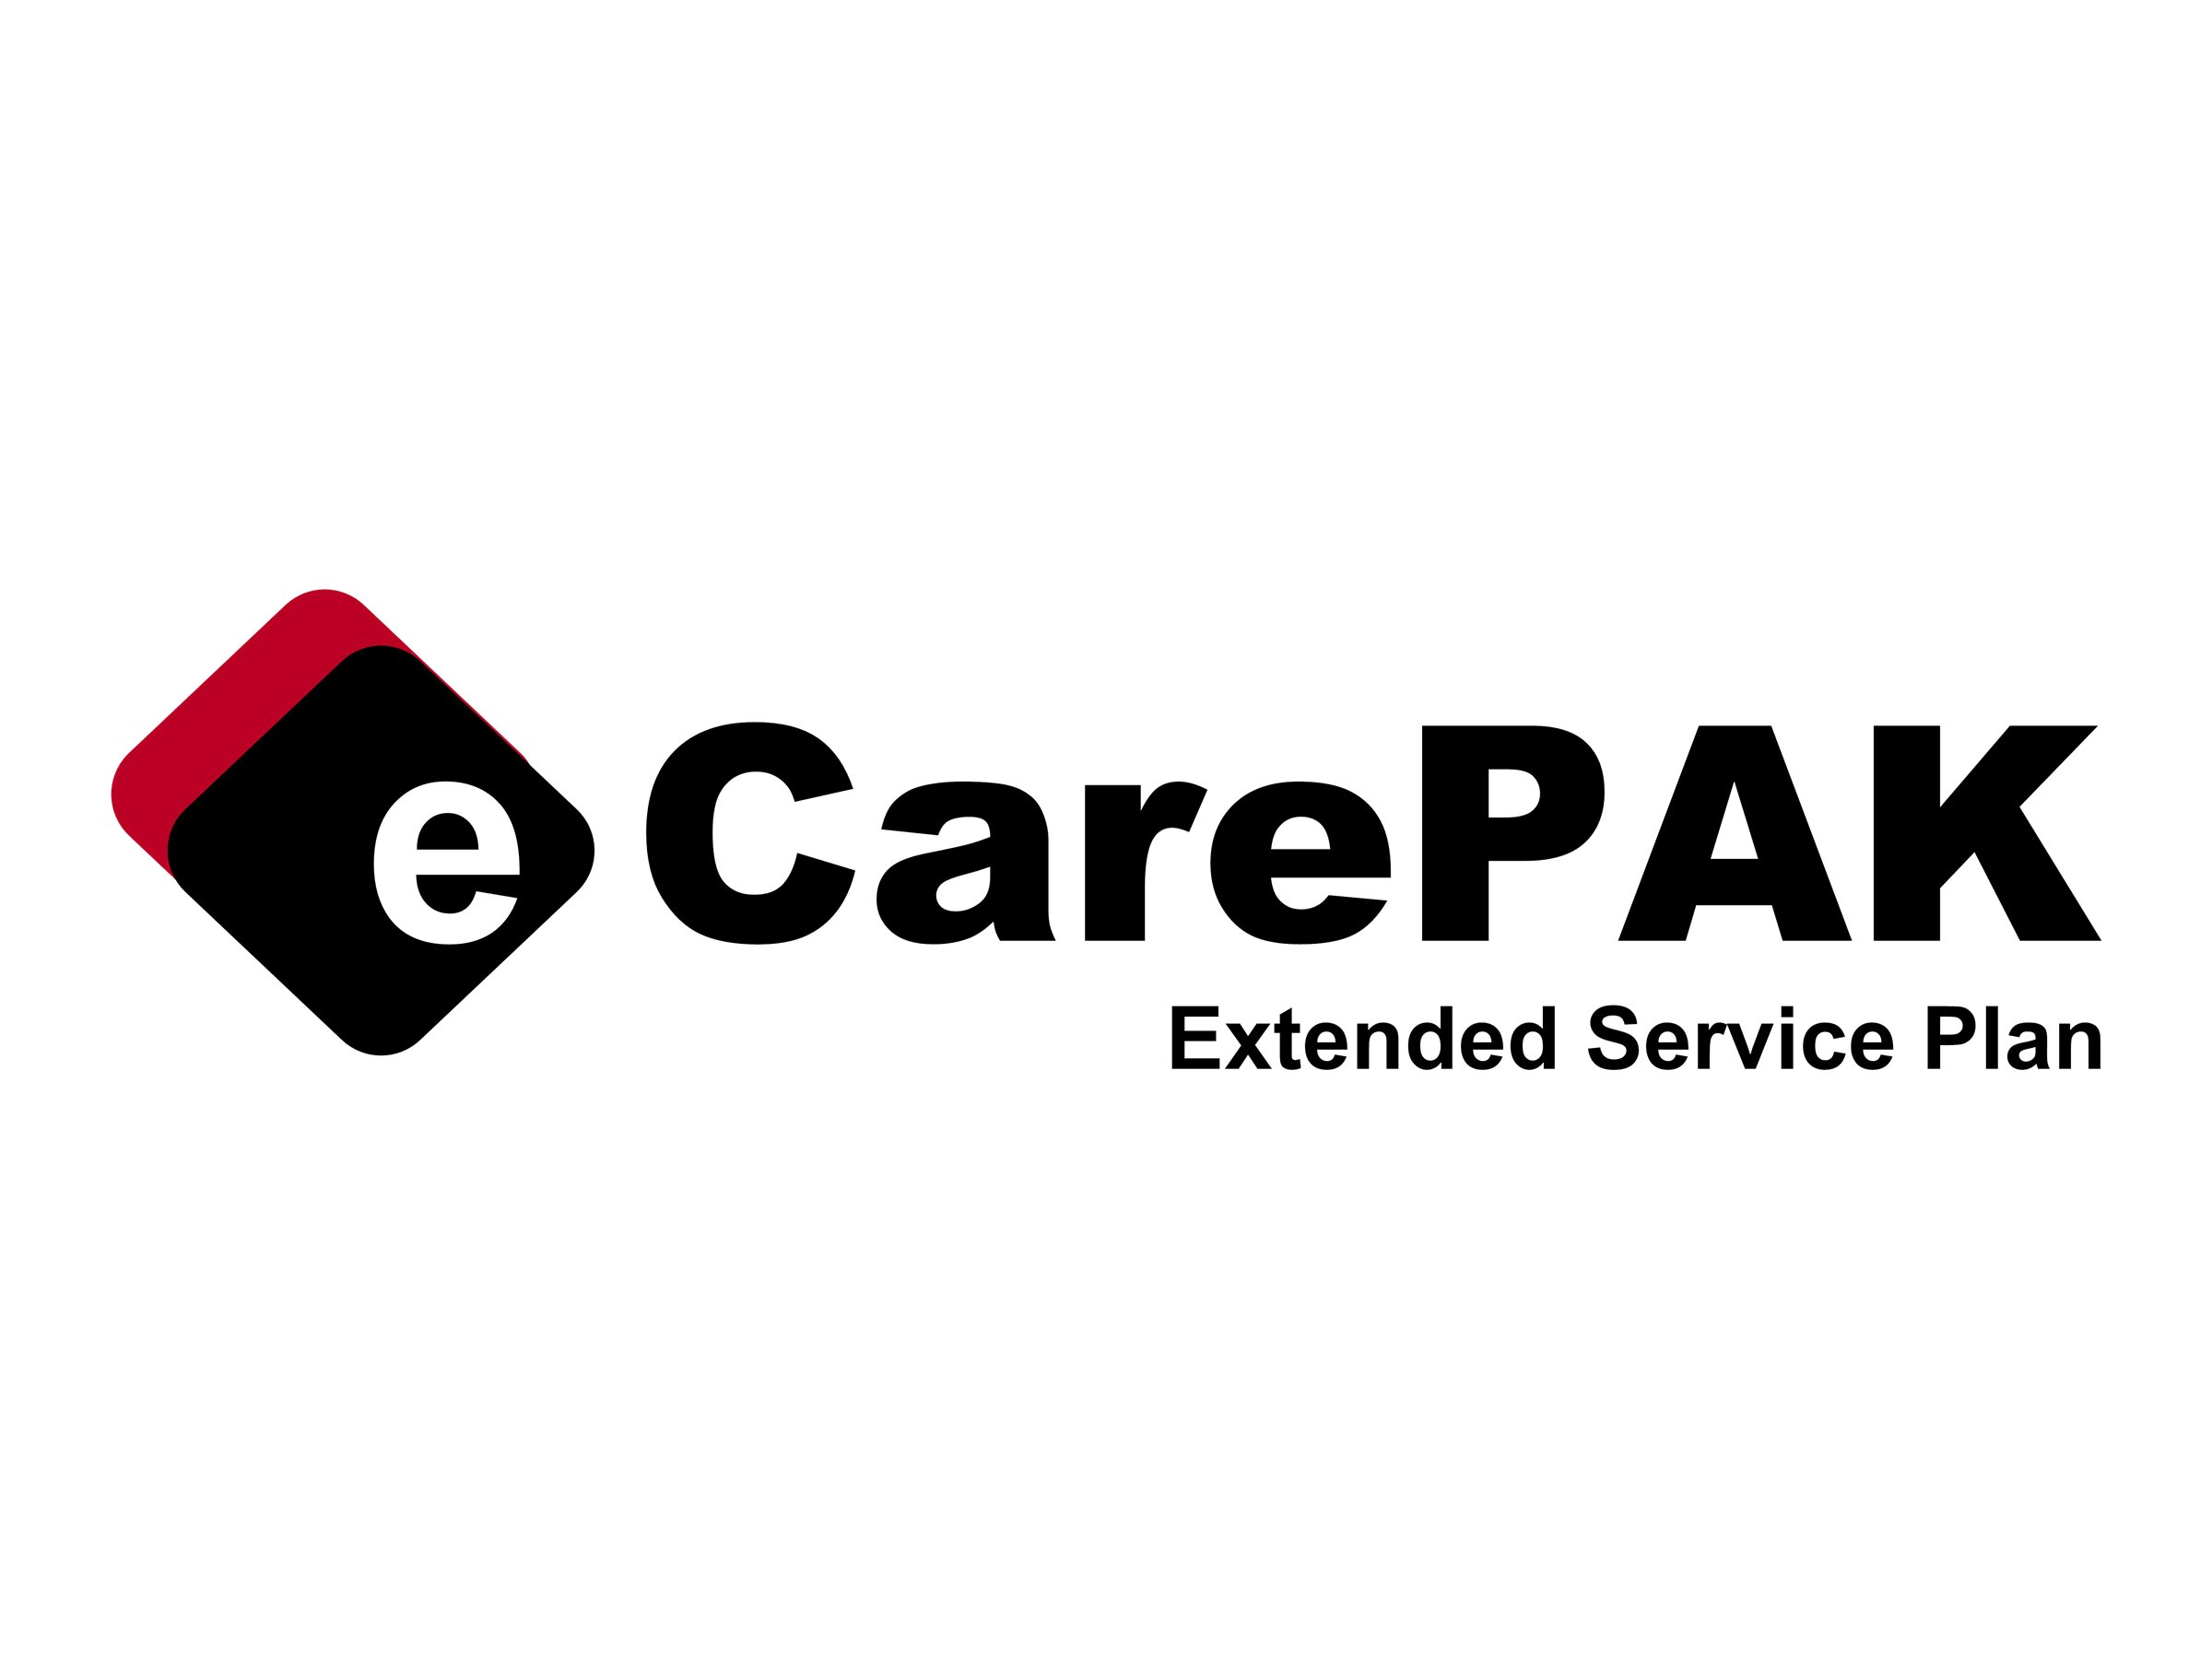 Canon eCarePAK Extended Service Plan On-Site Service Program - extended service agreement - 1 year - on-site